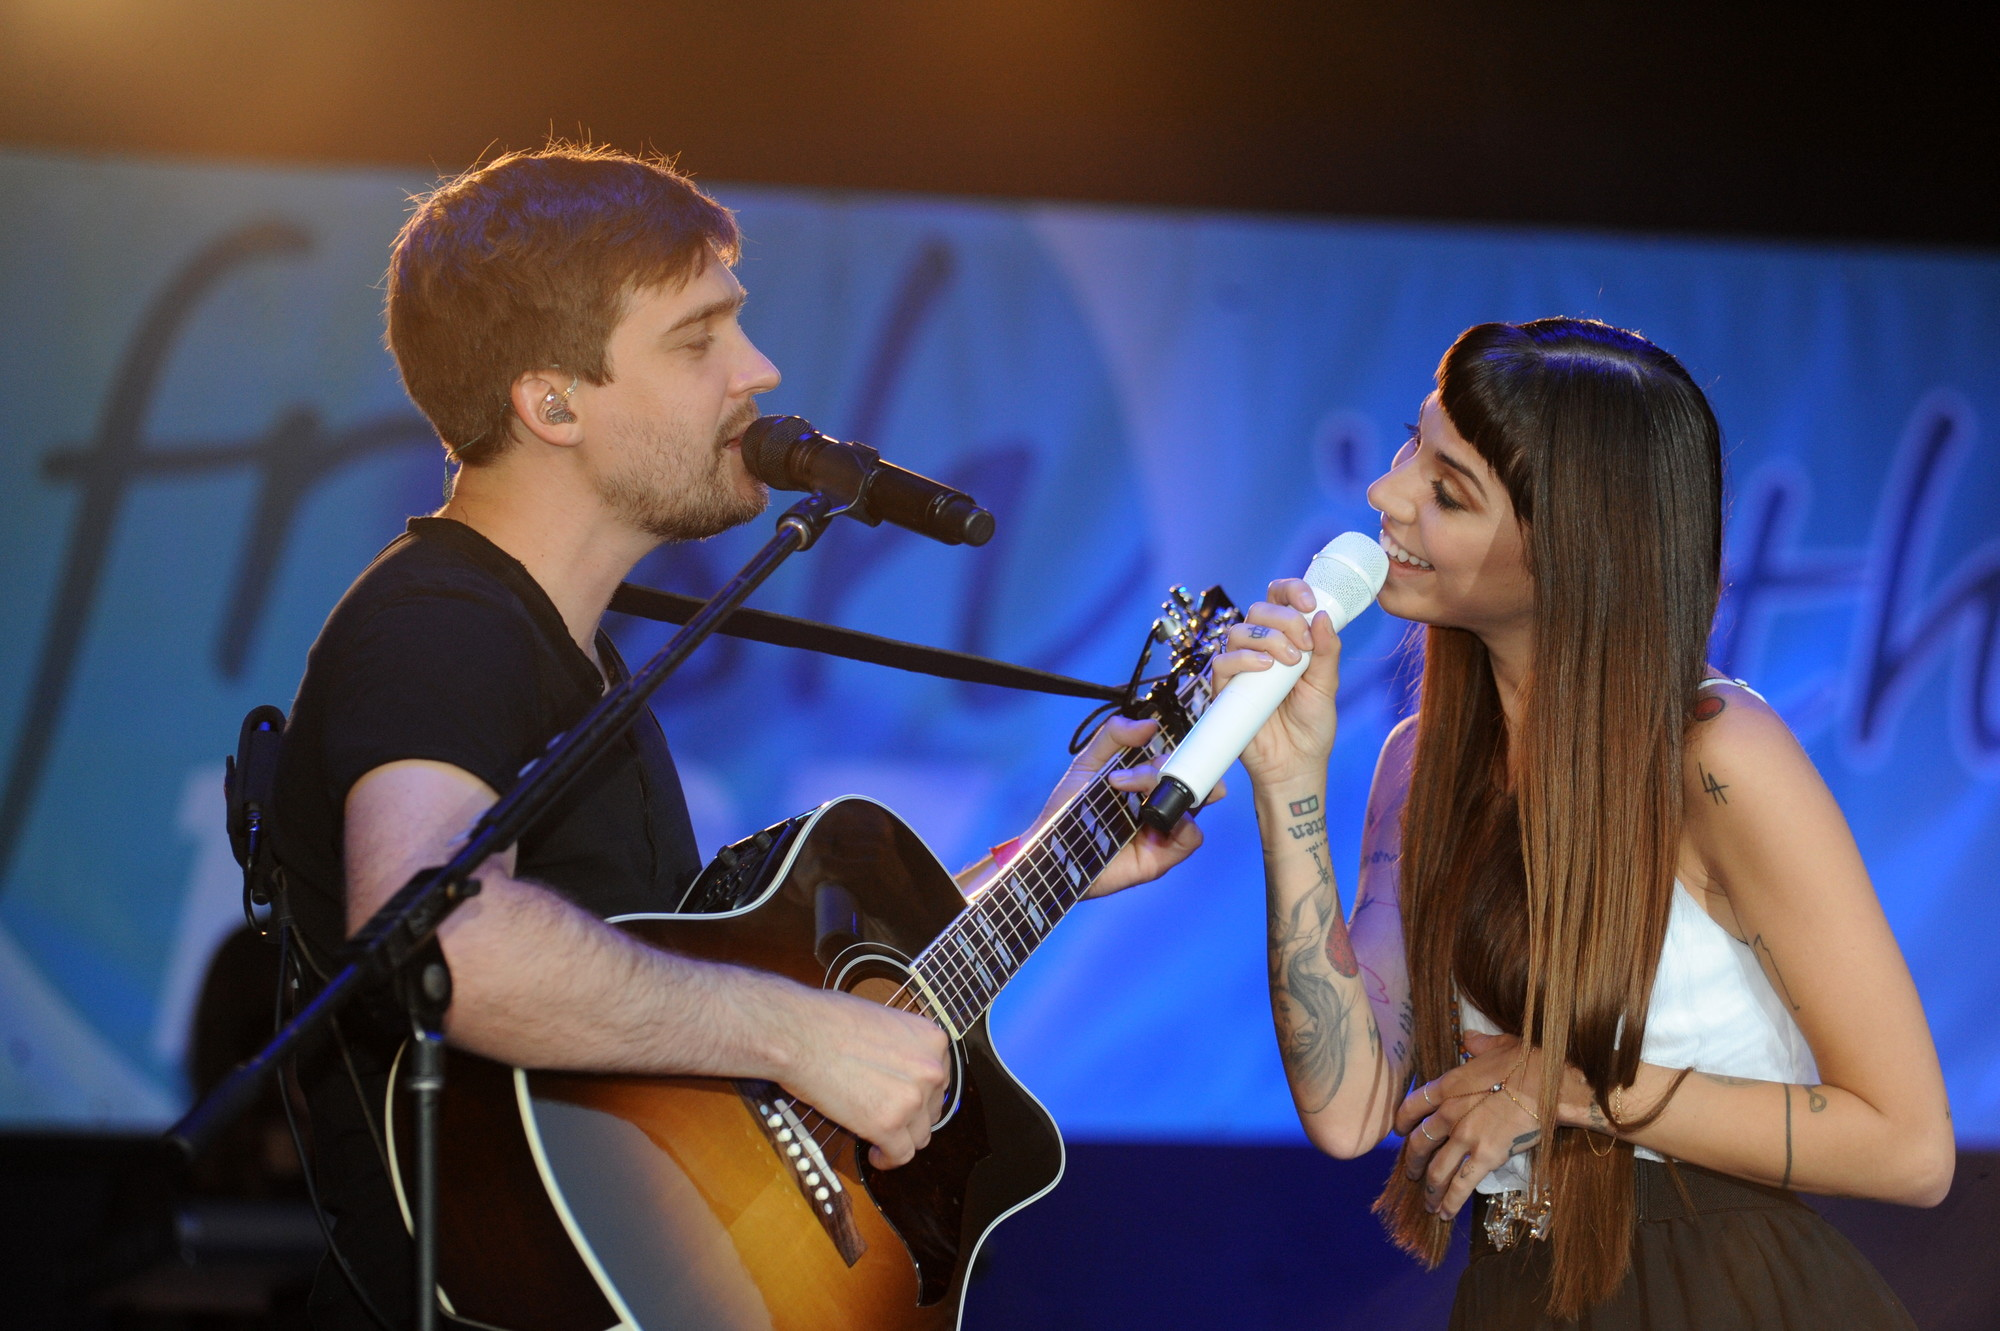 Christina Perri with her guitarist John Hanson.